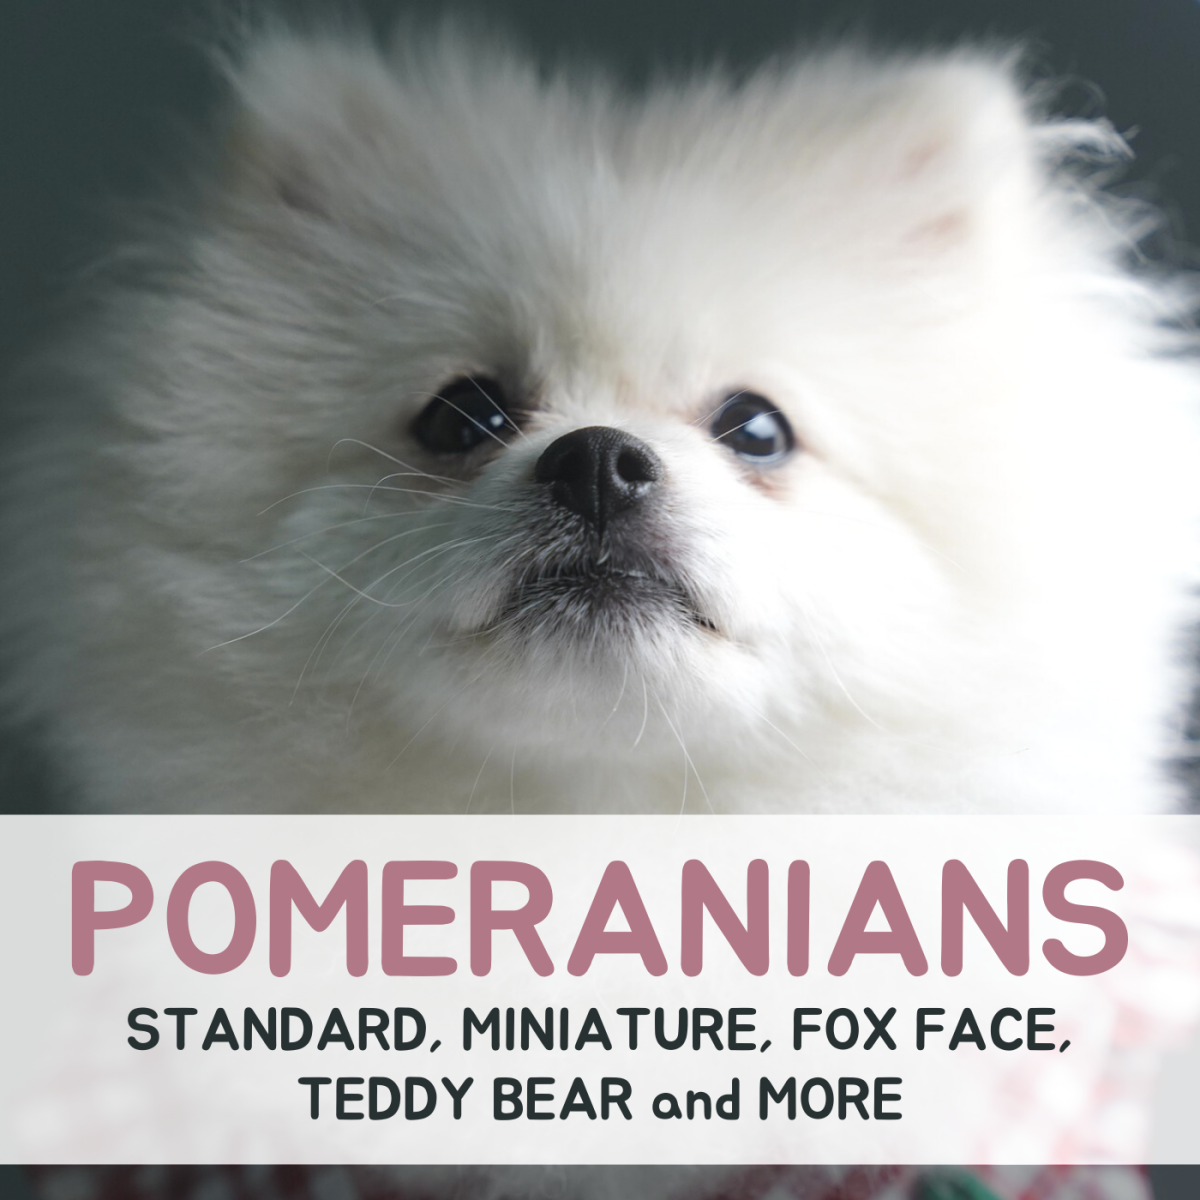 Learn more about the recognized and unofficial types of Pomeranians, and get general information about the breed as well!